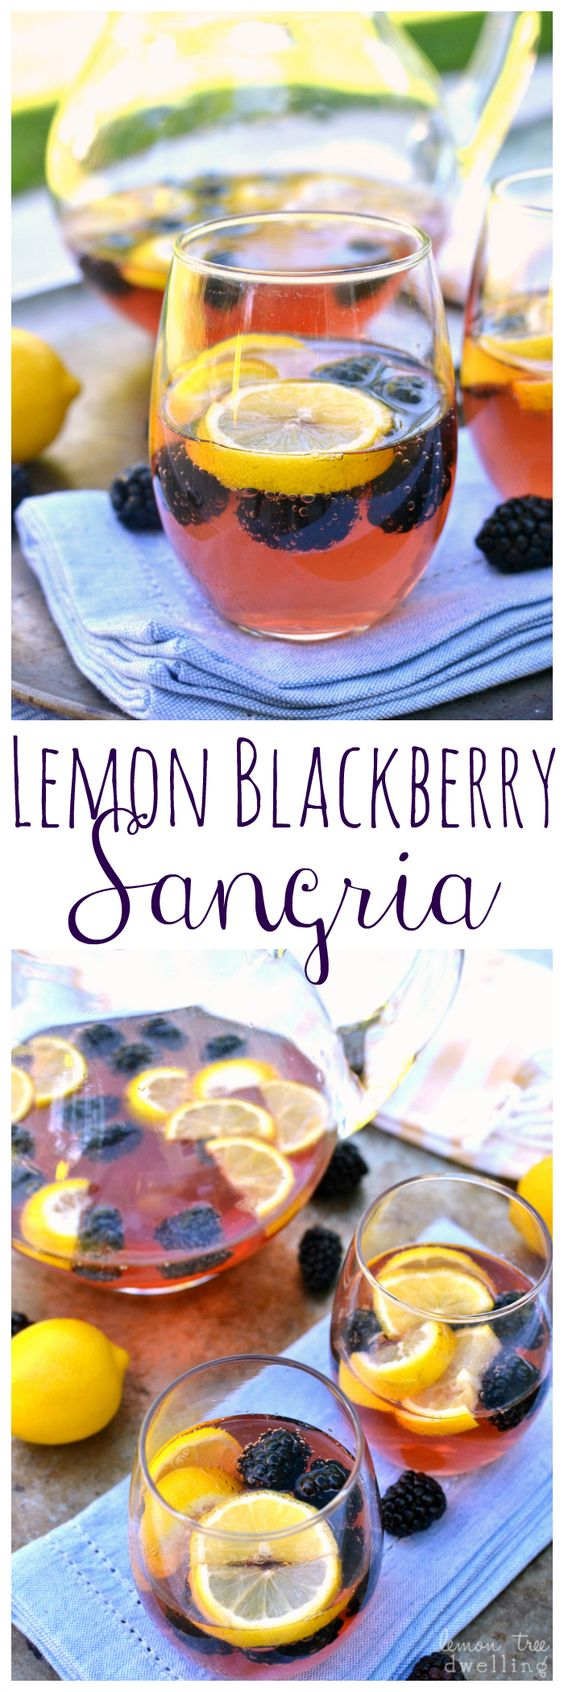 Make a pitcher of this Lemon Blackberry Sangria for your party and it's sure to be a hit! #ad